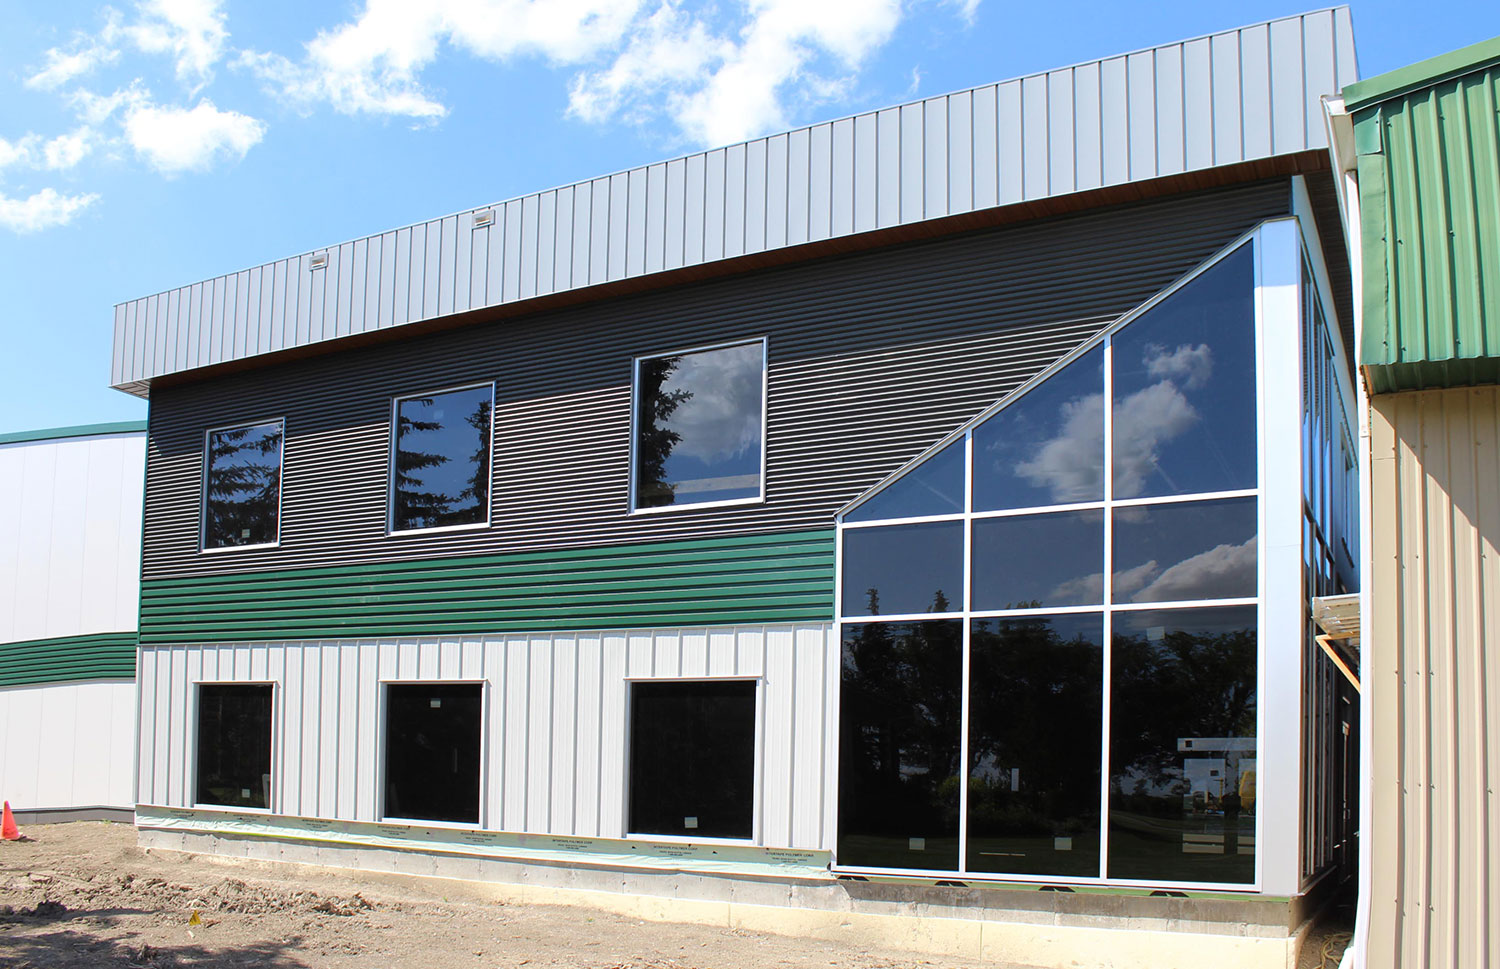 Commercial Building with 7/8 Corrugated in Carbon, Espresso Woodgrain Soffit, and custom panels in Melchers Green and Bright White